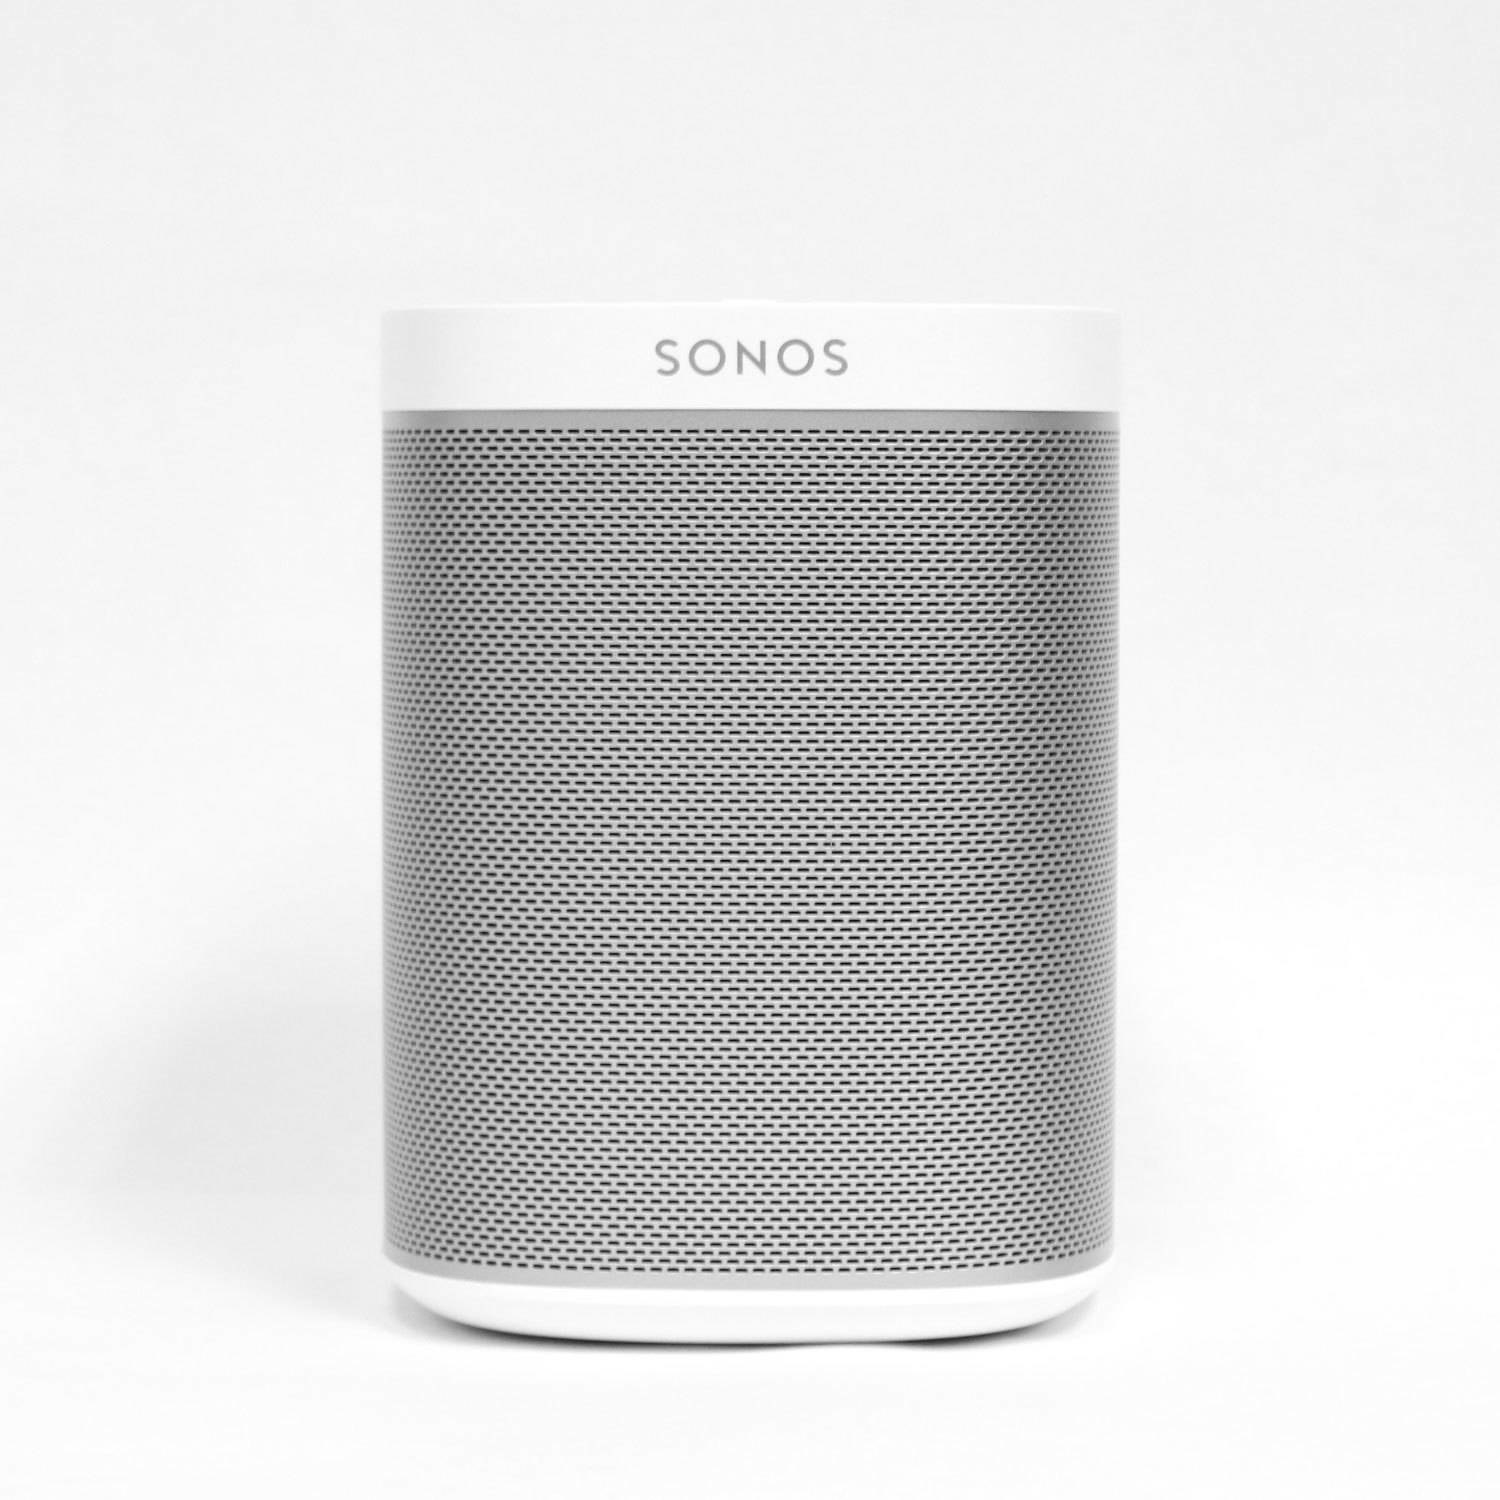 """Promising review: """"Sound is incredible. Get two and spread it through the house. You can pair them or control them separately."""" —KlariosruePrice: $149 (originally $199, available in two colors)"""